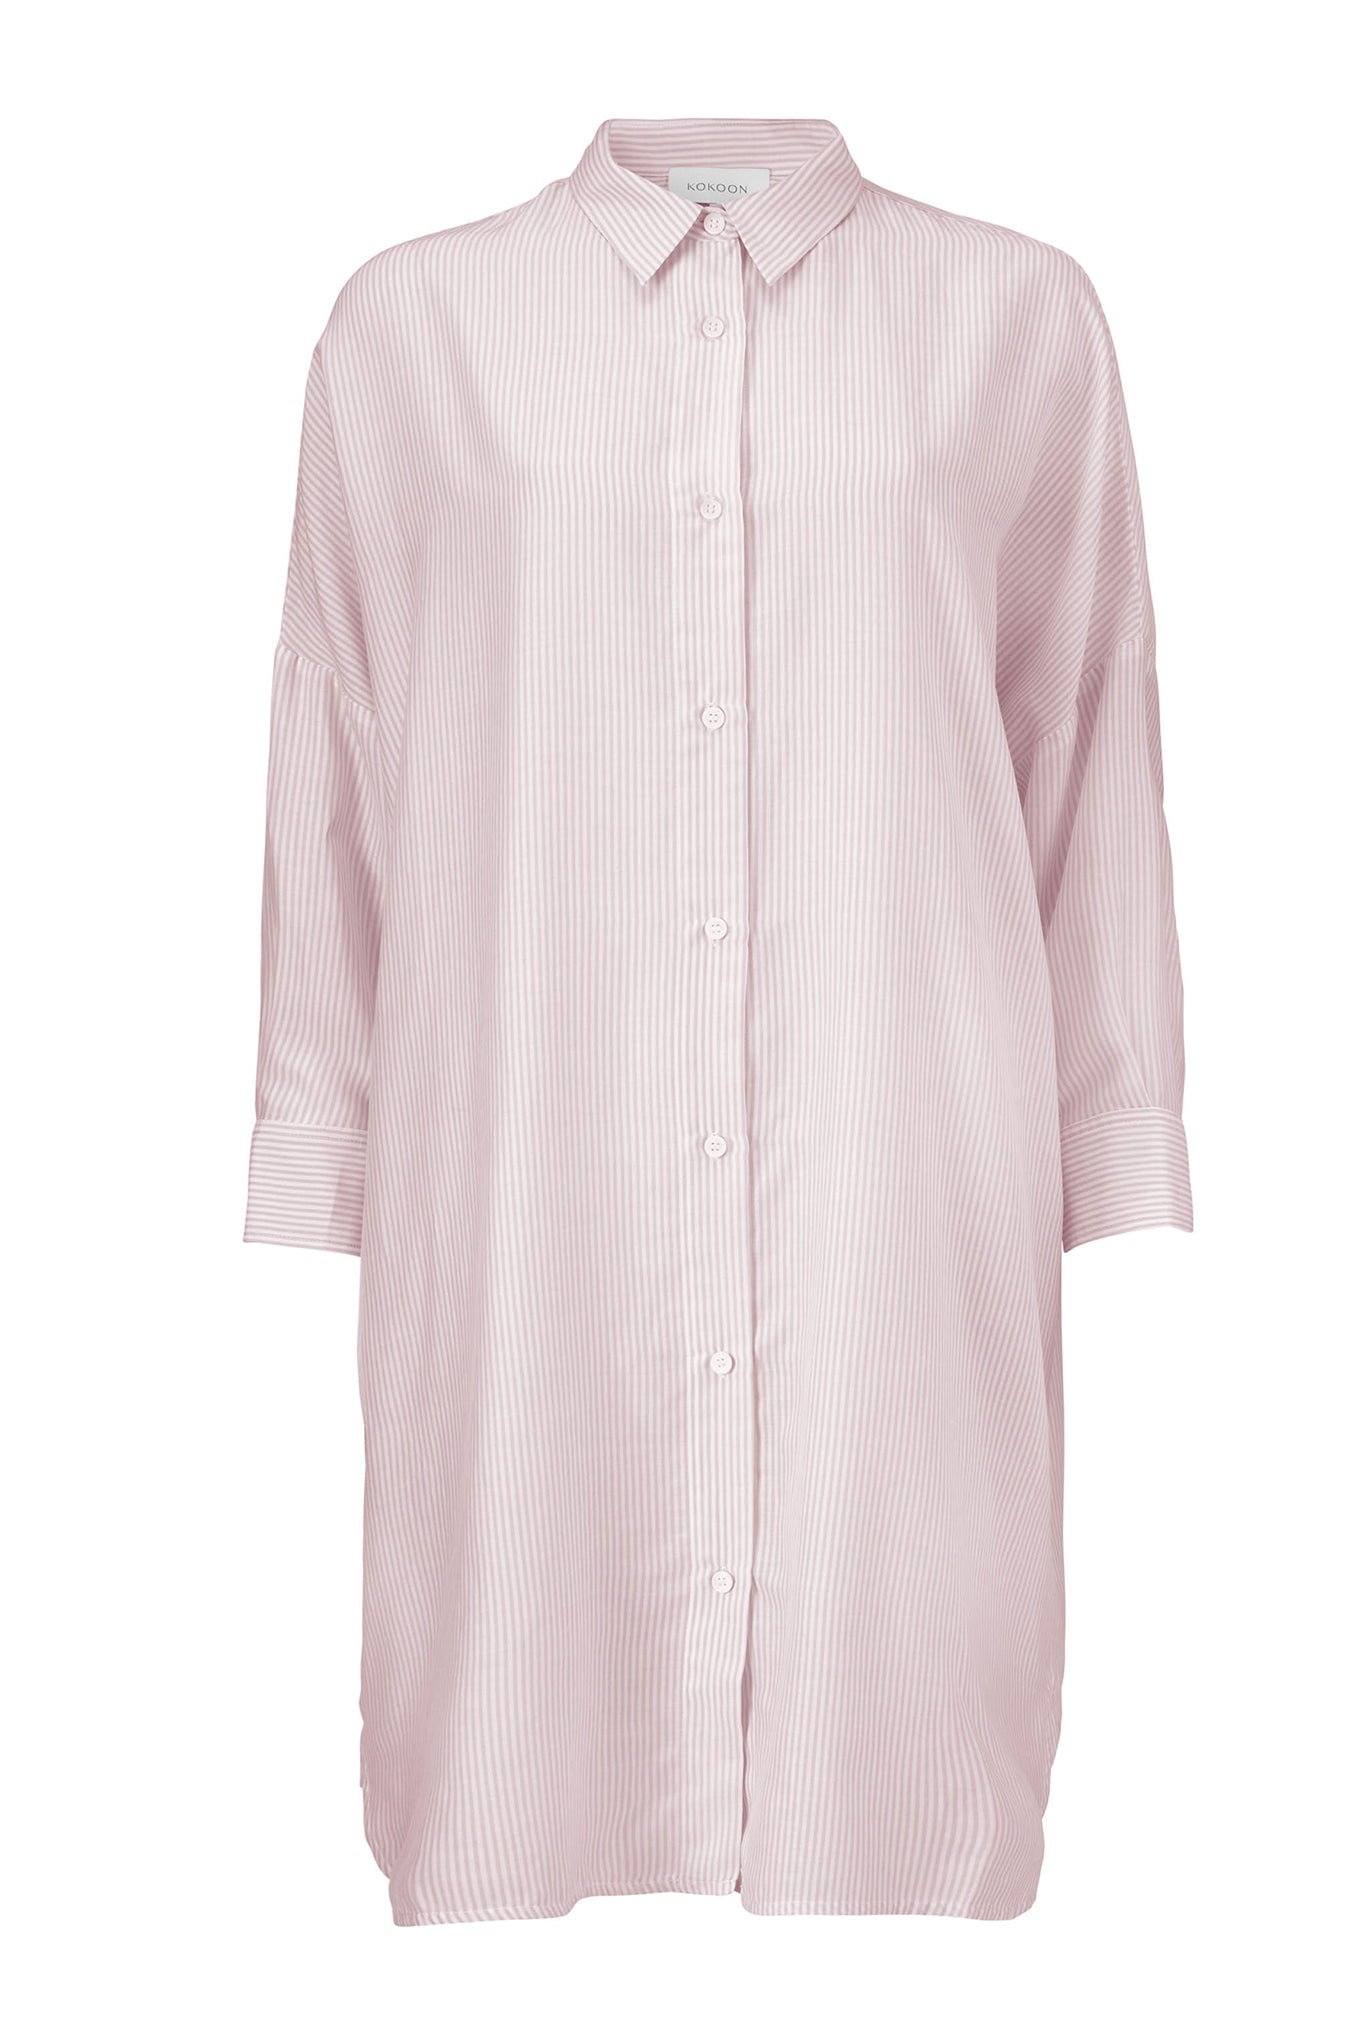 DUKE SHIRT DRESS - PINK STRIPE